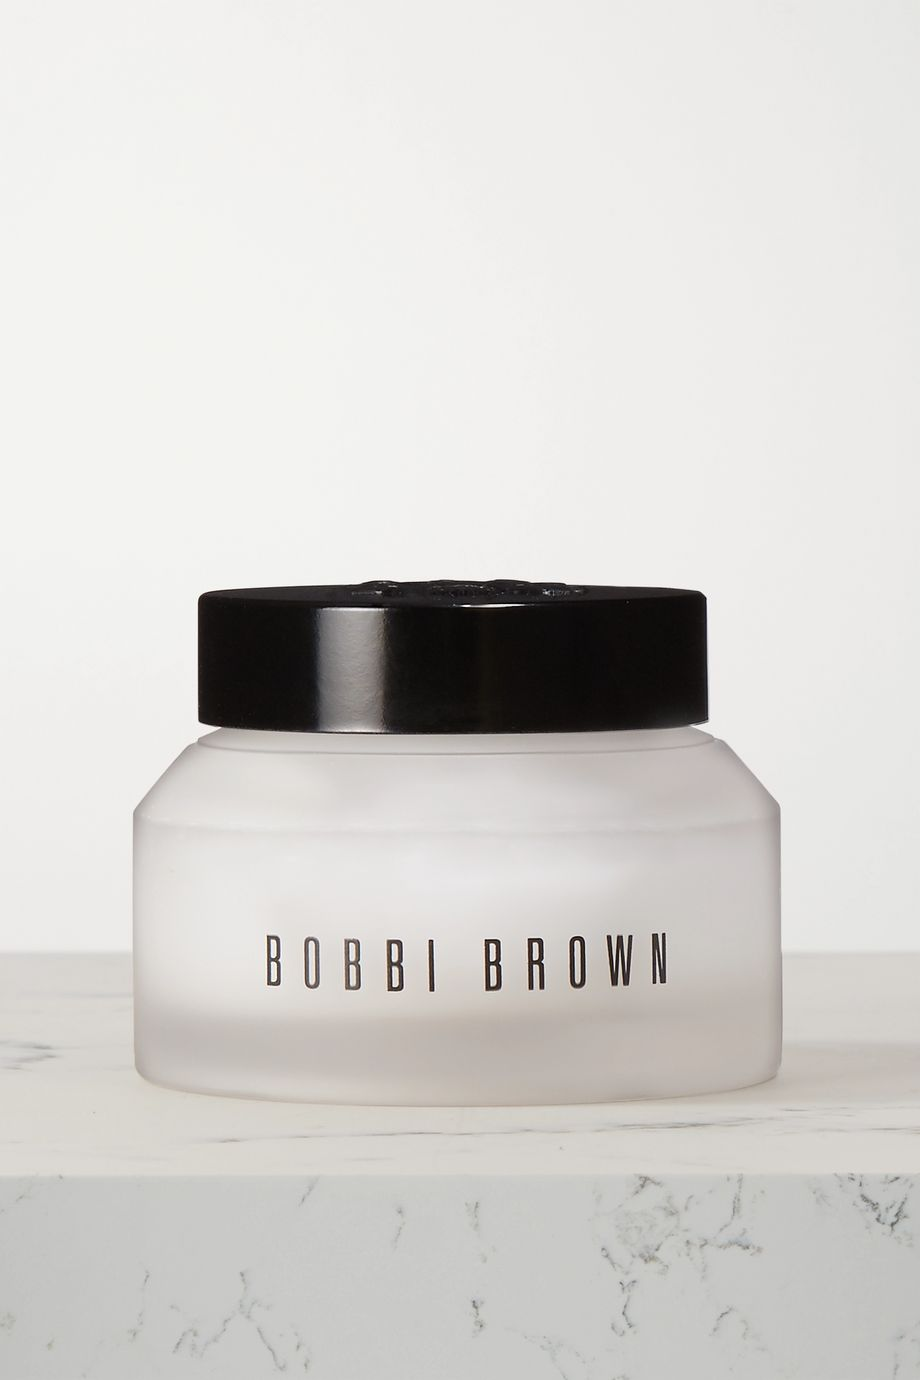 Bobbi Brown Gel crème hydratant, 50 ml